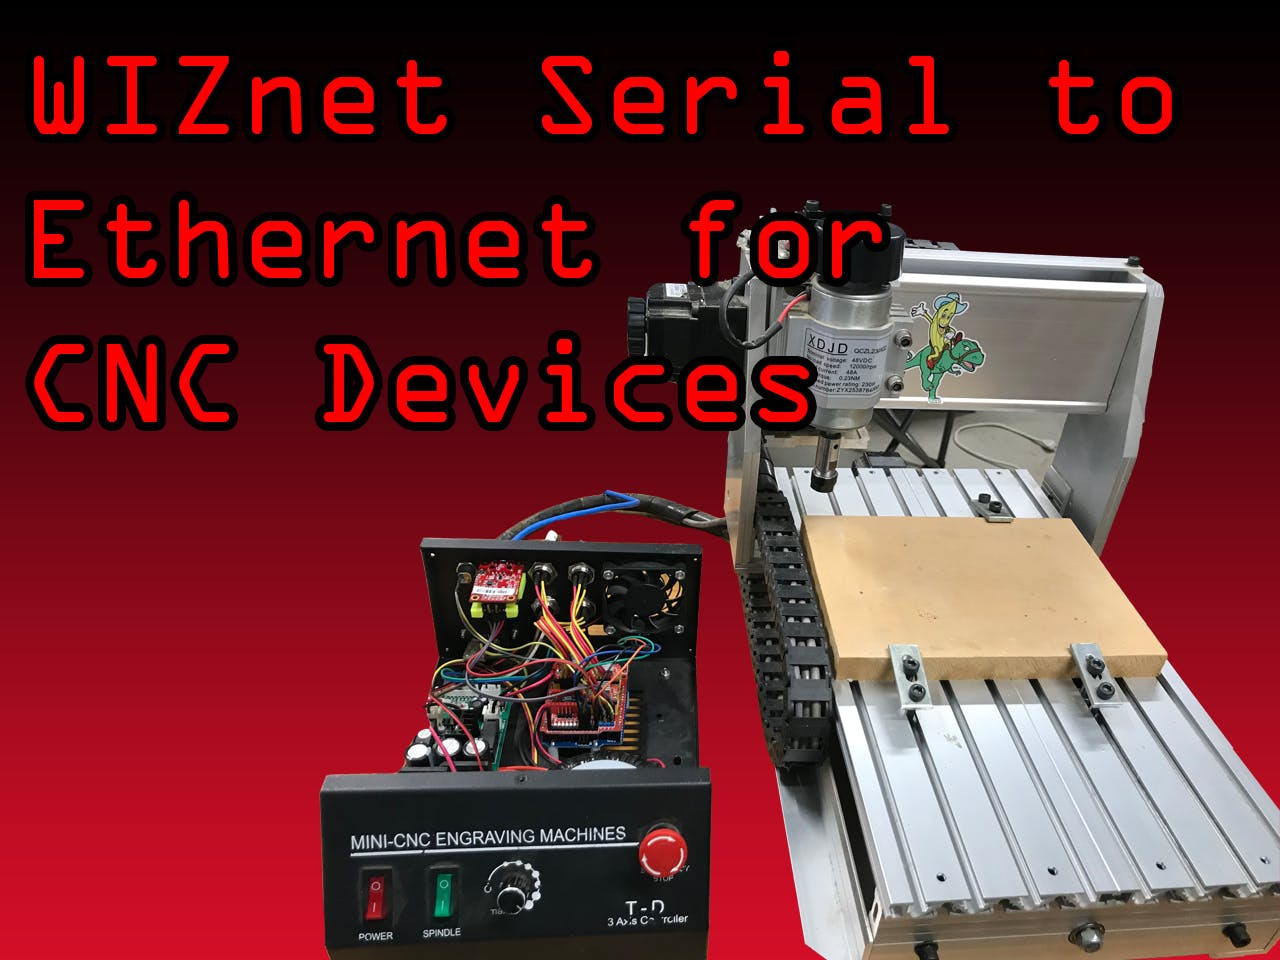 Ethernet Connected CNC Mill or Other Machines